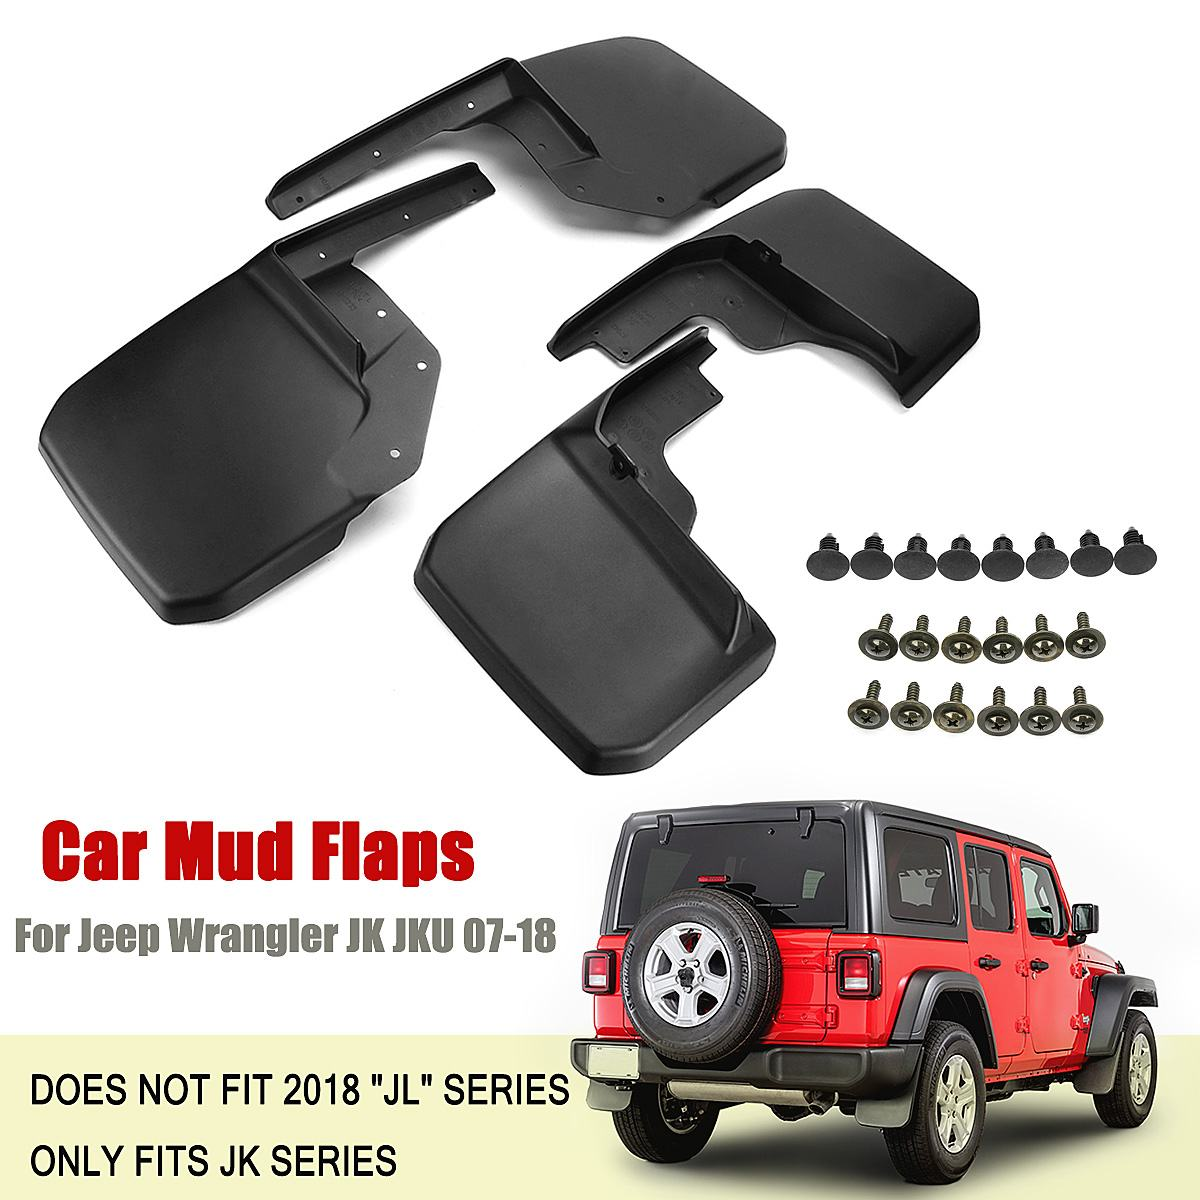 Car Mud Flaps For Jeep for Wrangler JK/JKU 2007 2018 Front Rear Splash Guards For Fender Mudflap Mudguard-in Mudguards from Automobiles & Motorcycles    1